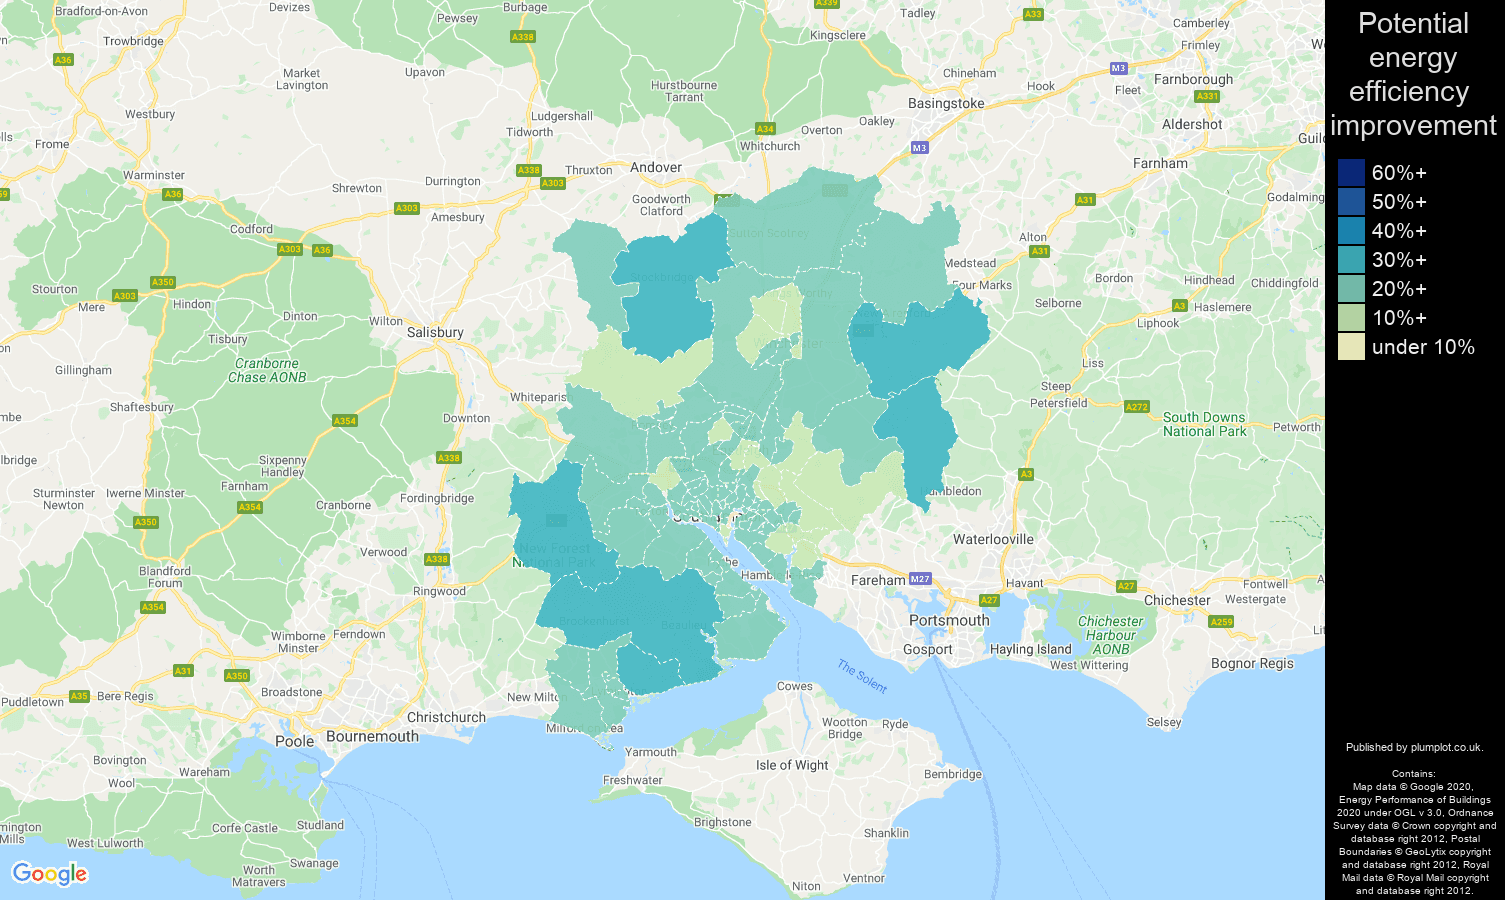 Southampton map of potential energy efficiency improvement of houses